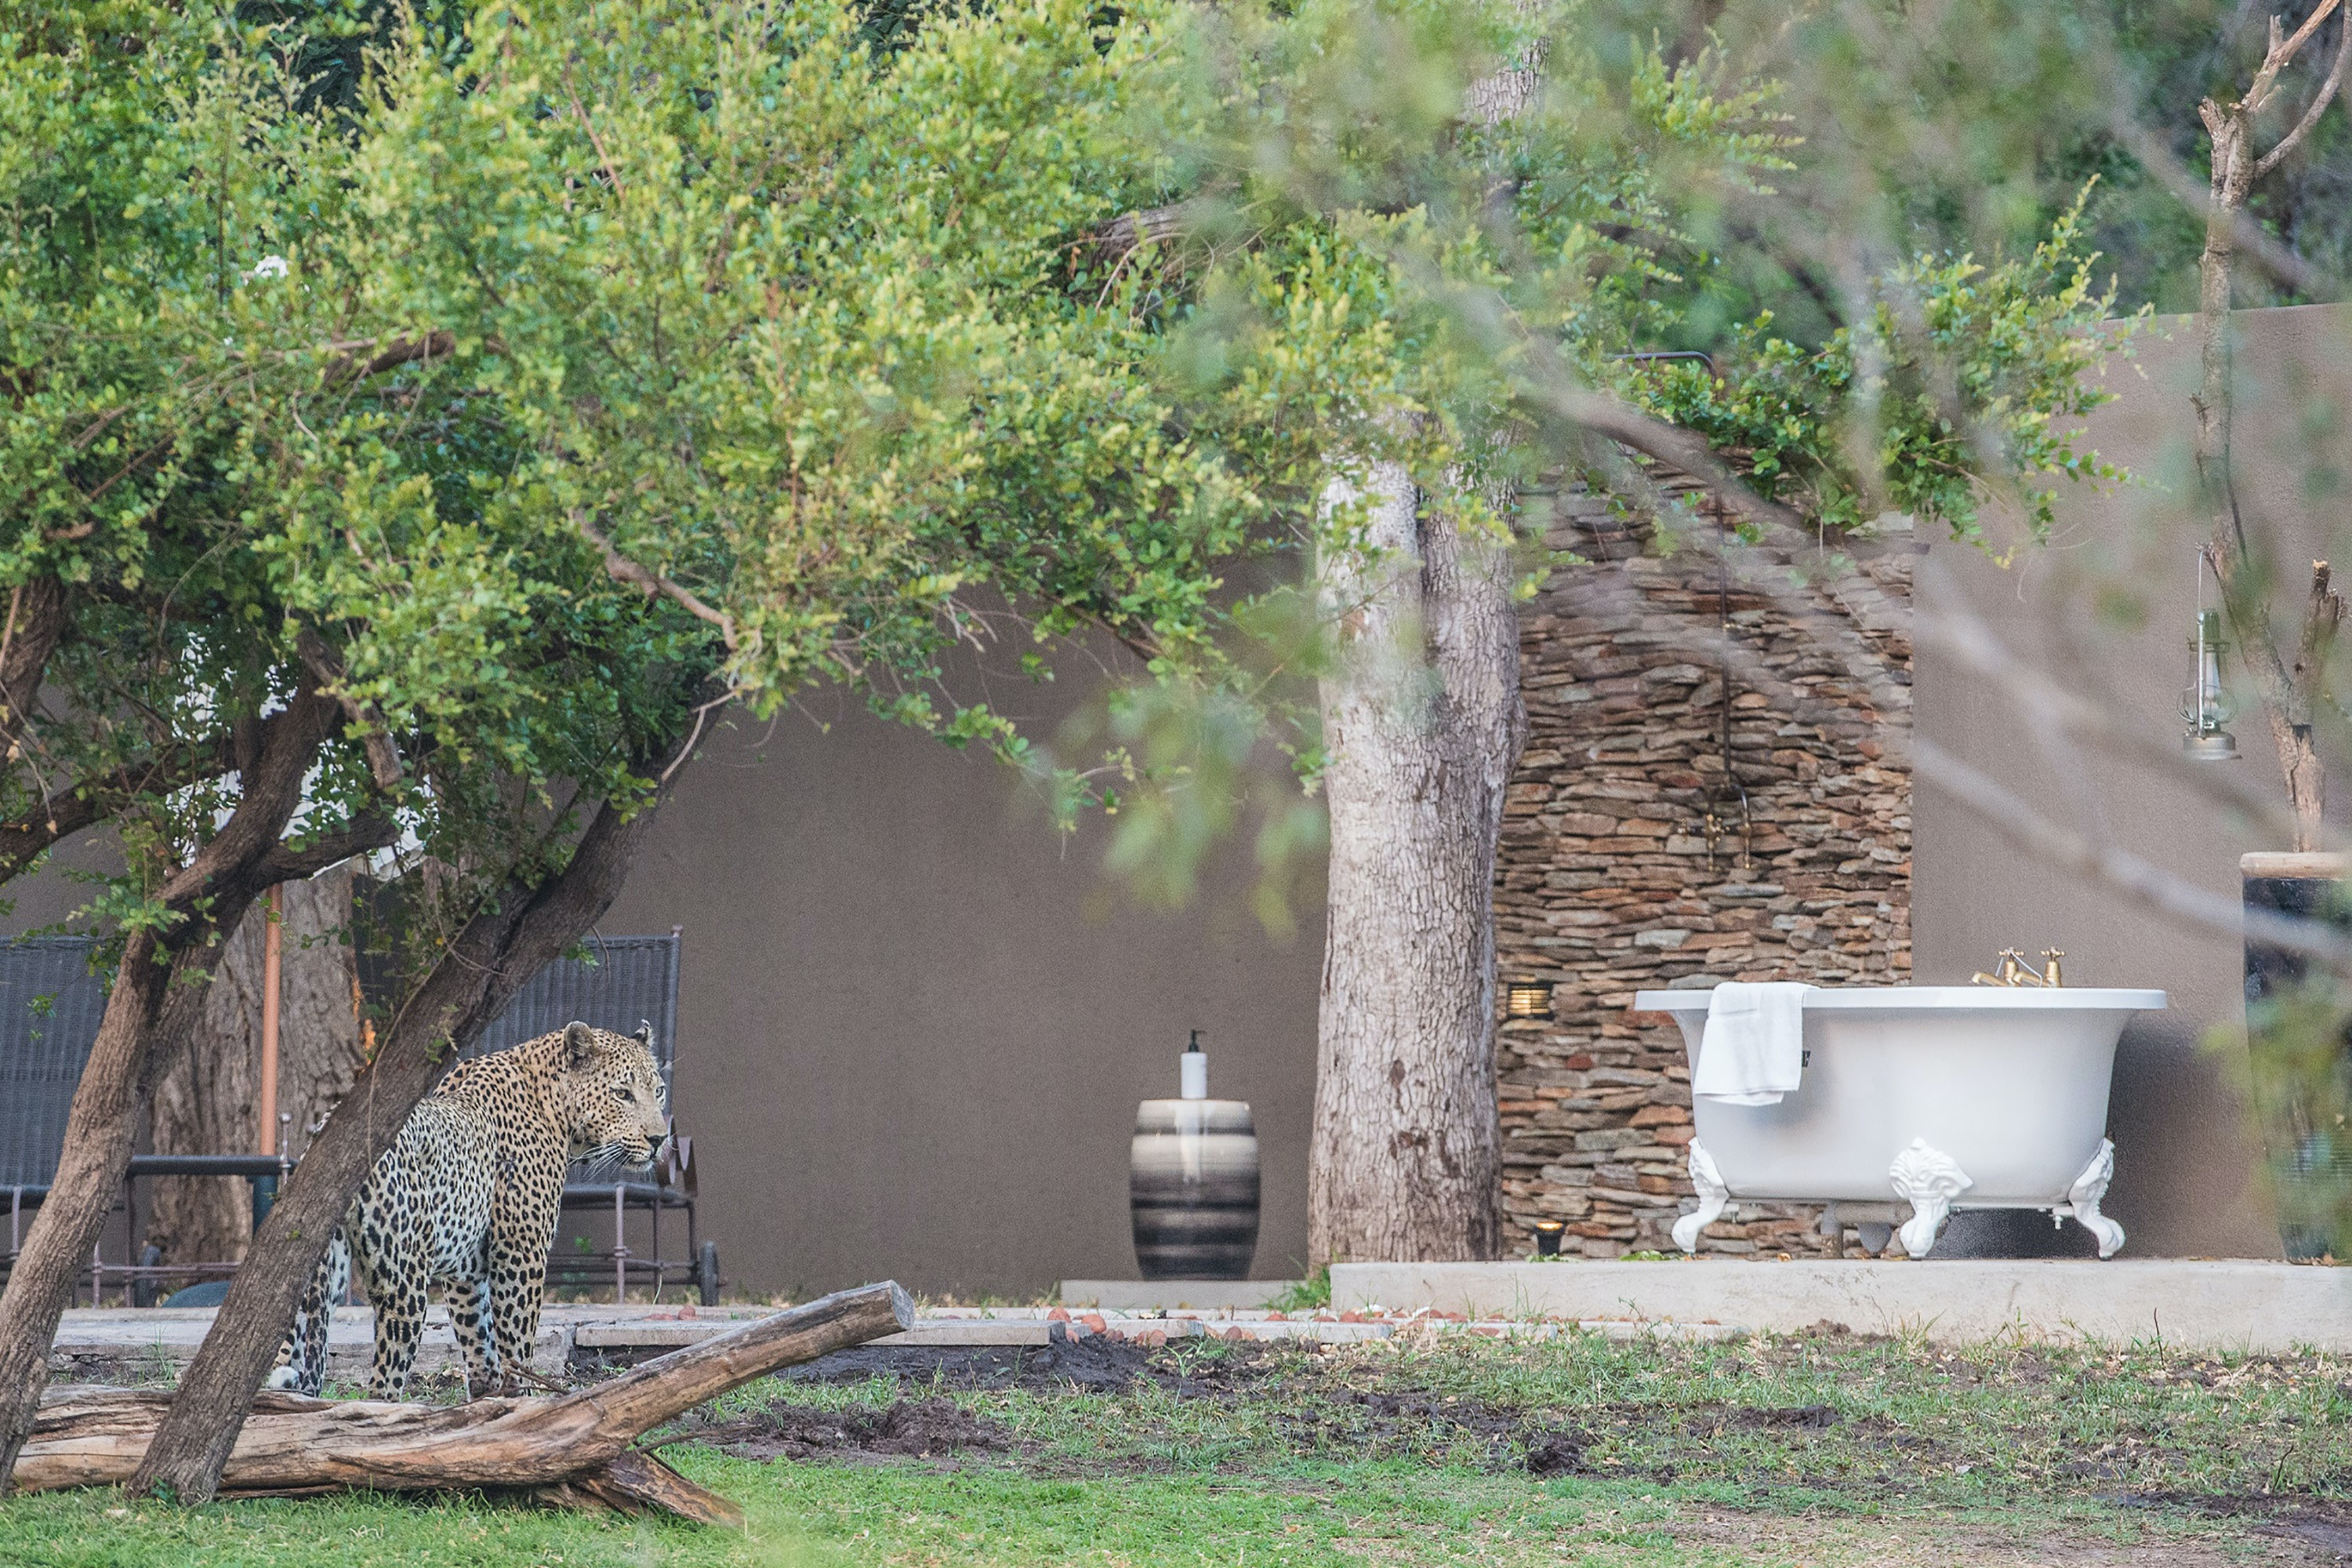 Keep an eye out for big cats while bathing at Sabi Sabi.